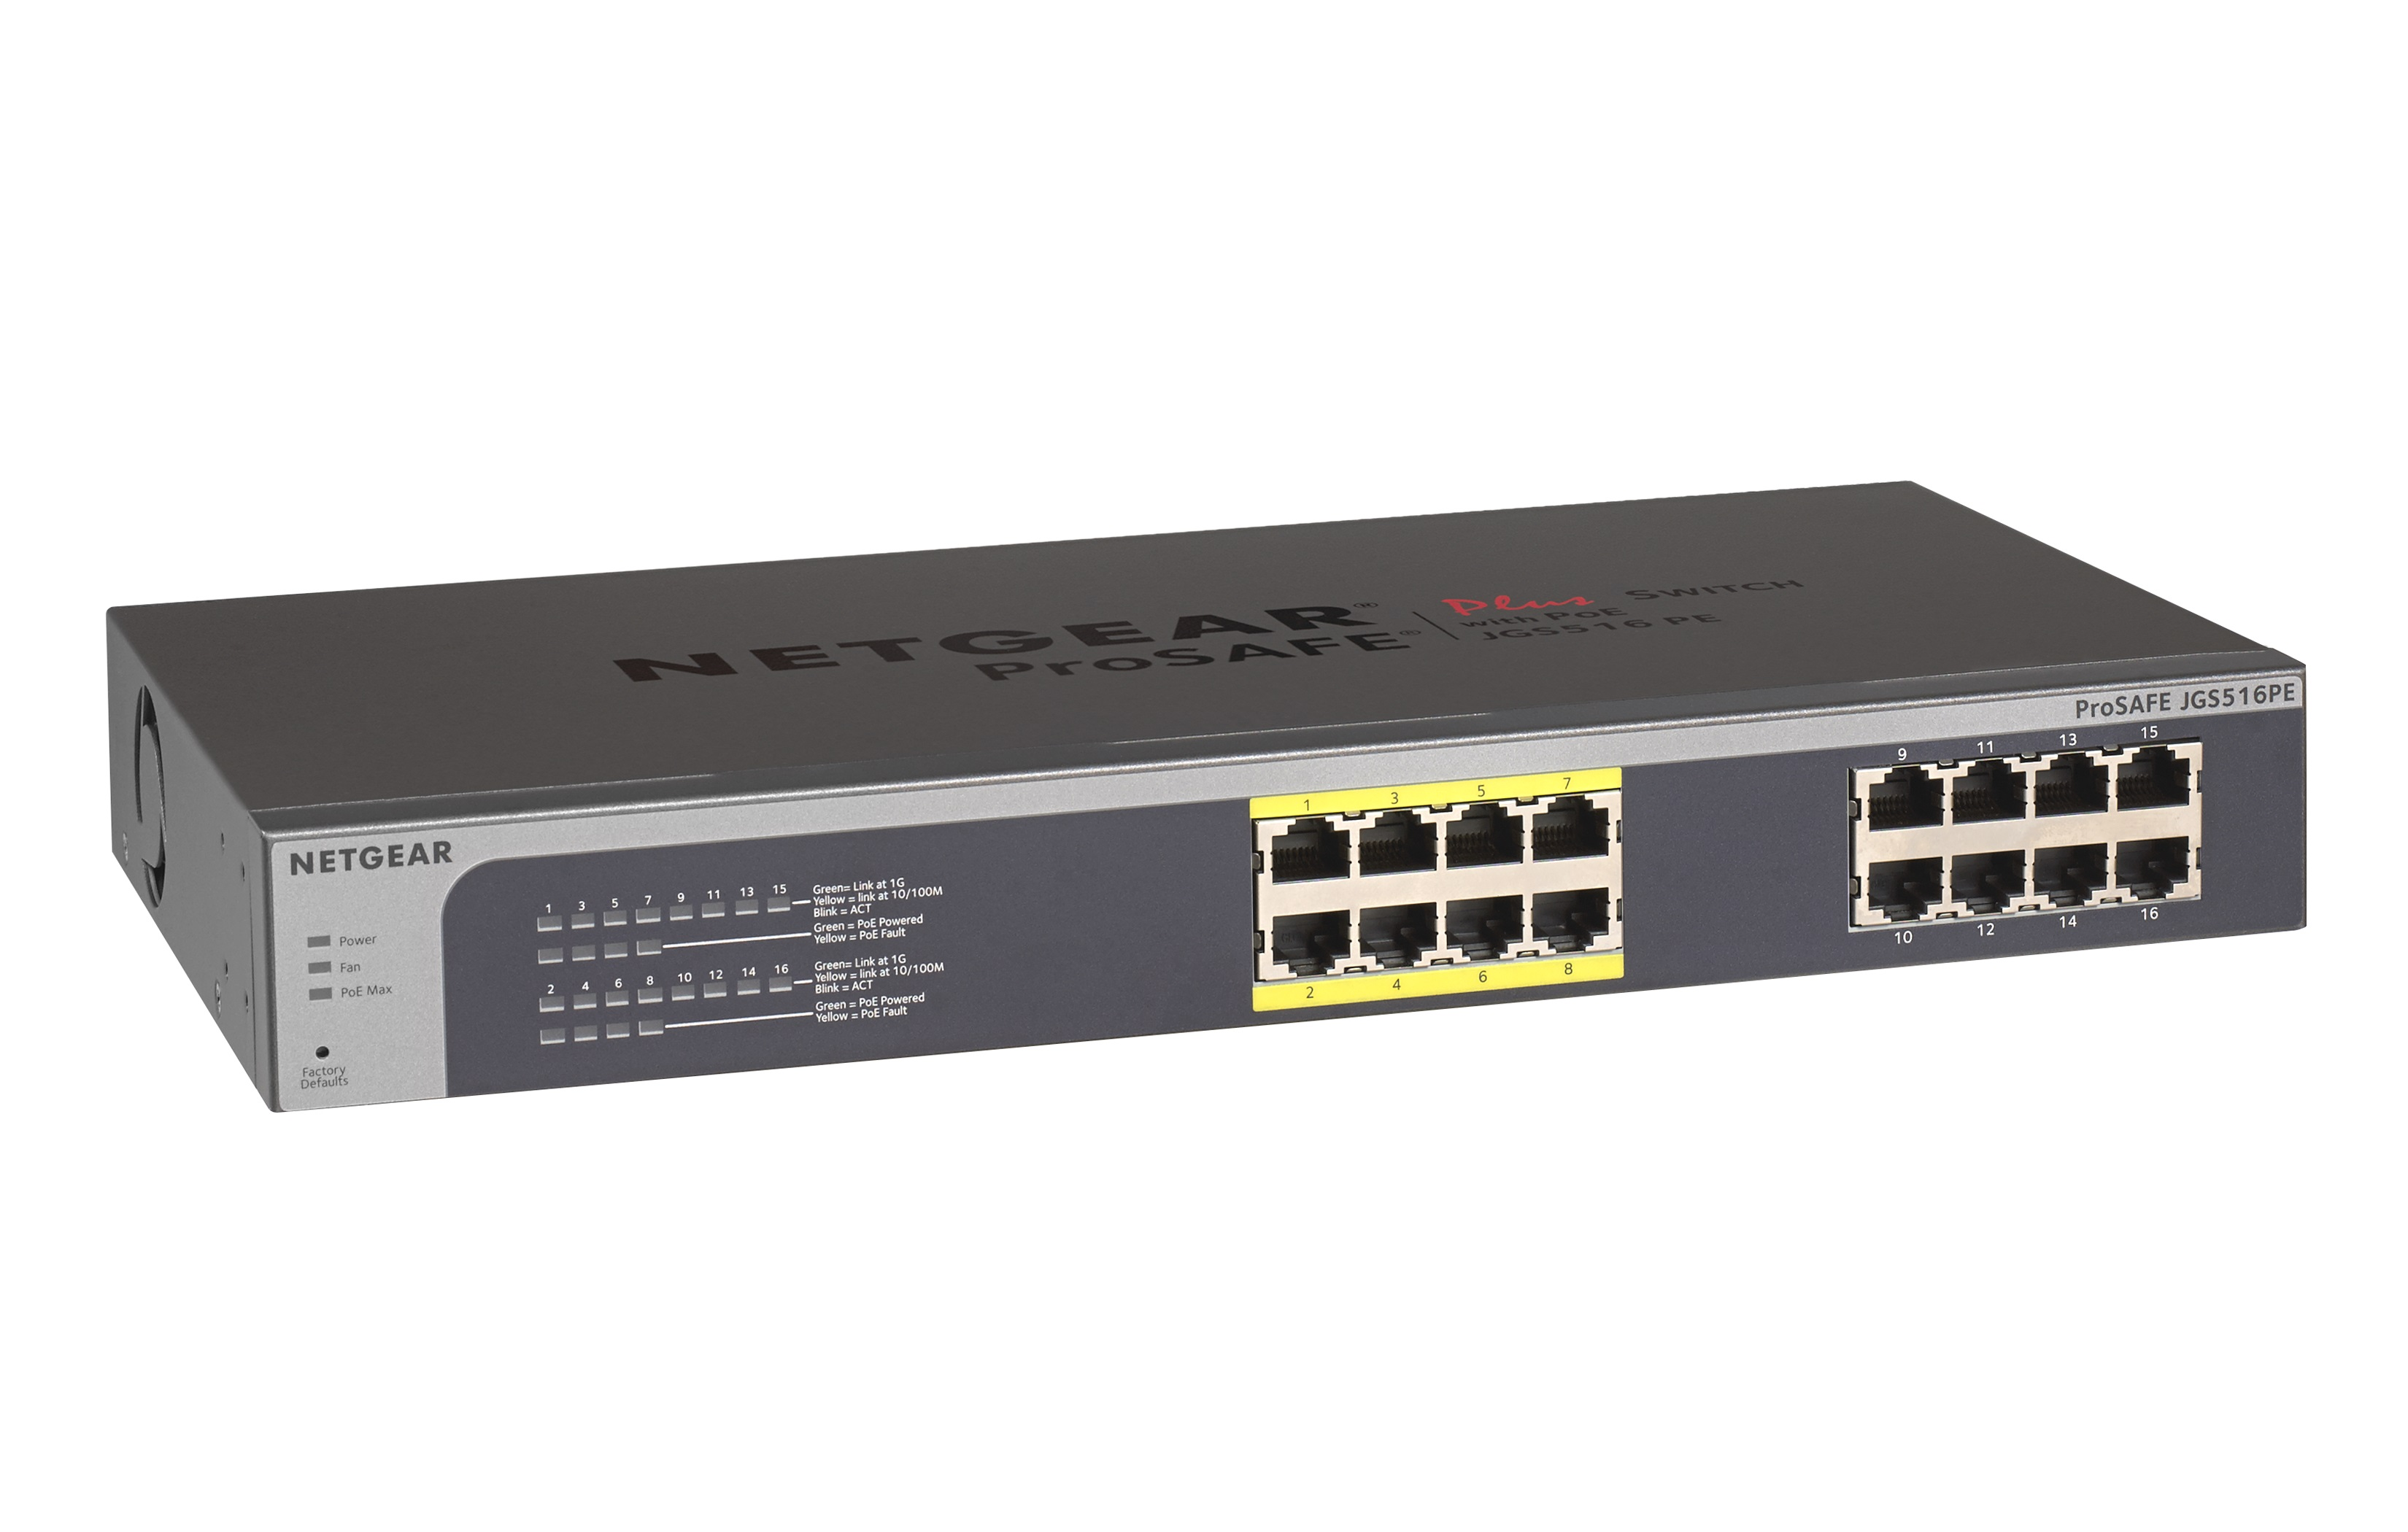 NETGEAR 16xGb/8x PoE Plus switch,85W,JGS516PE